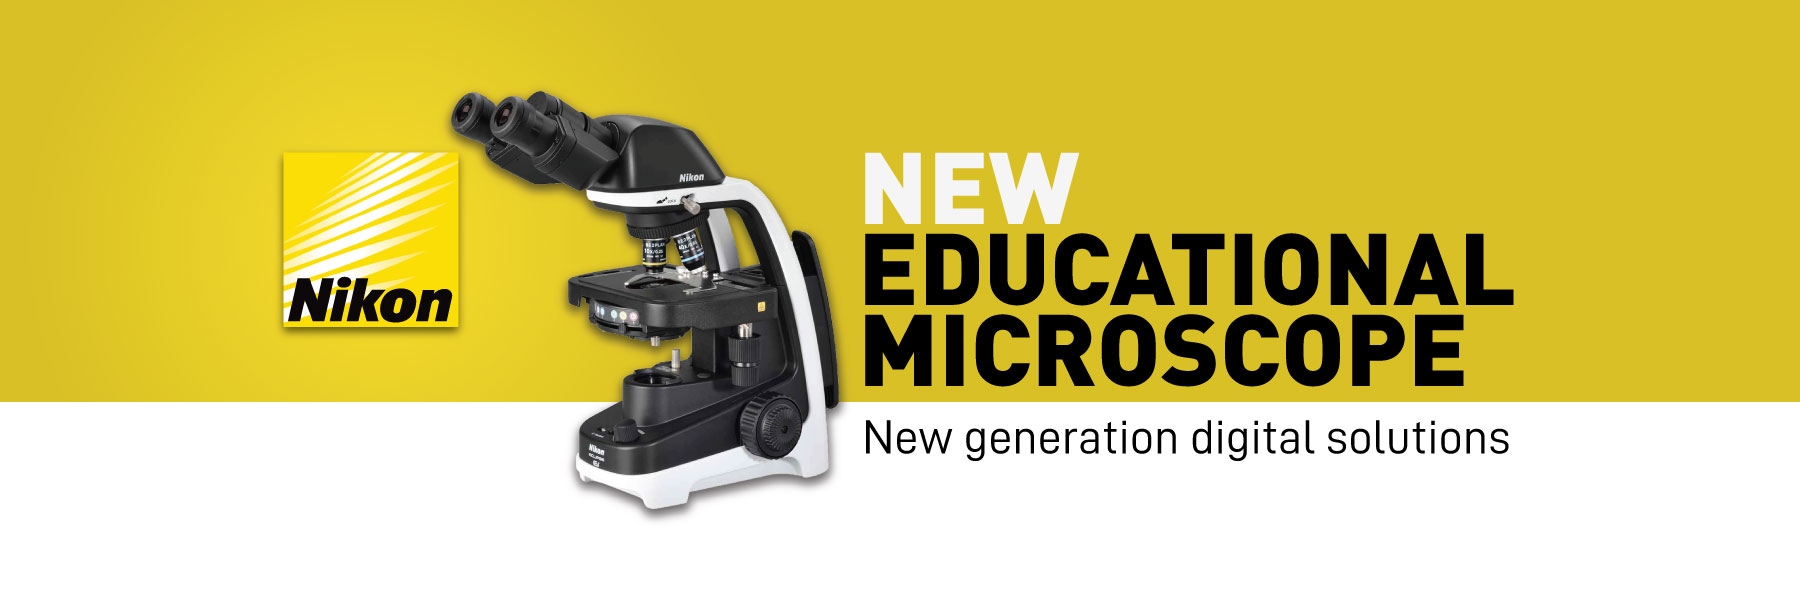 Nikon New Educational Microscopes